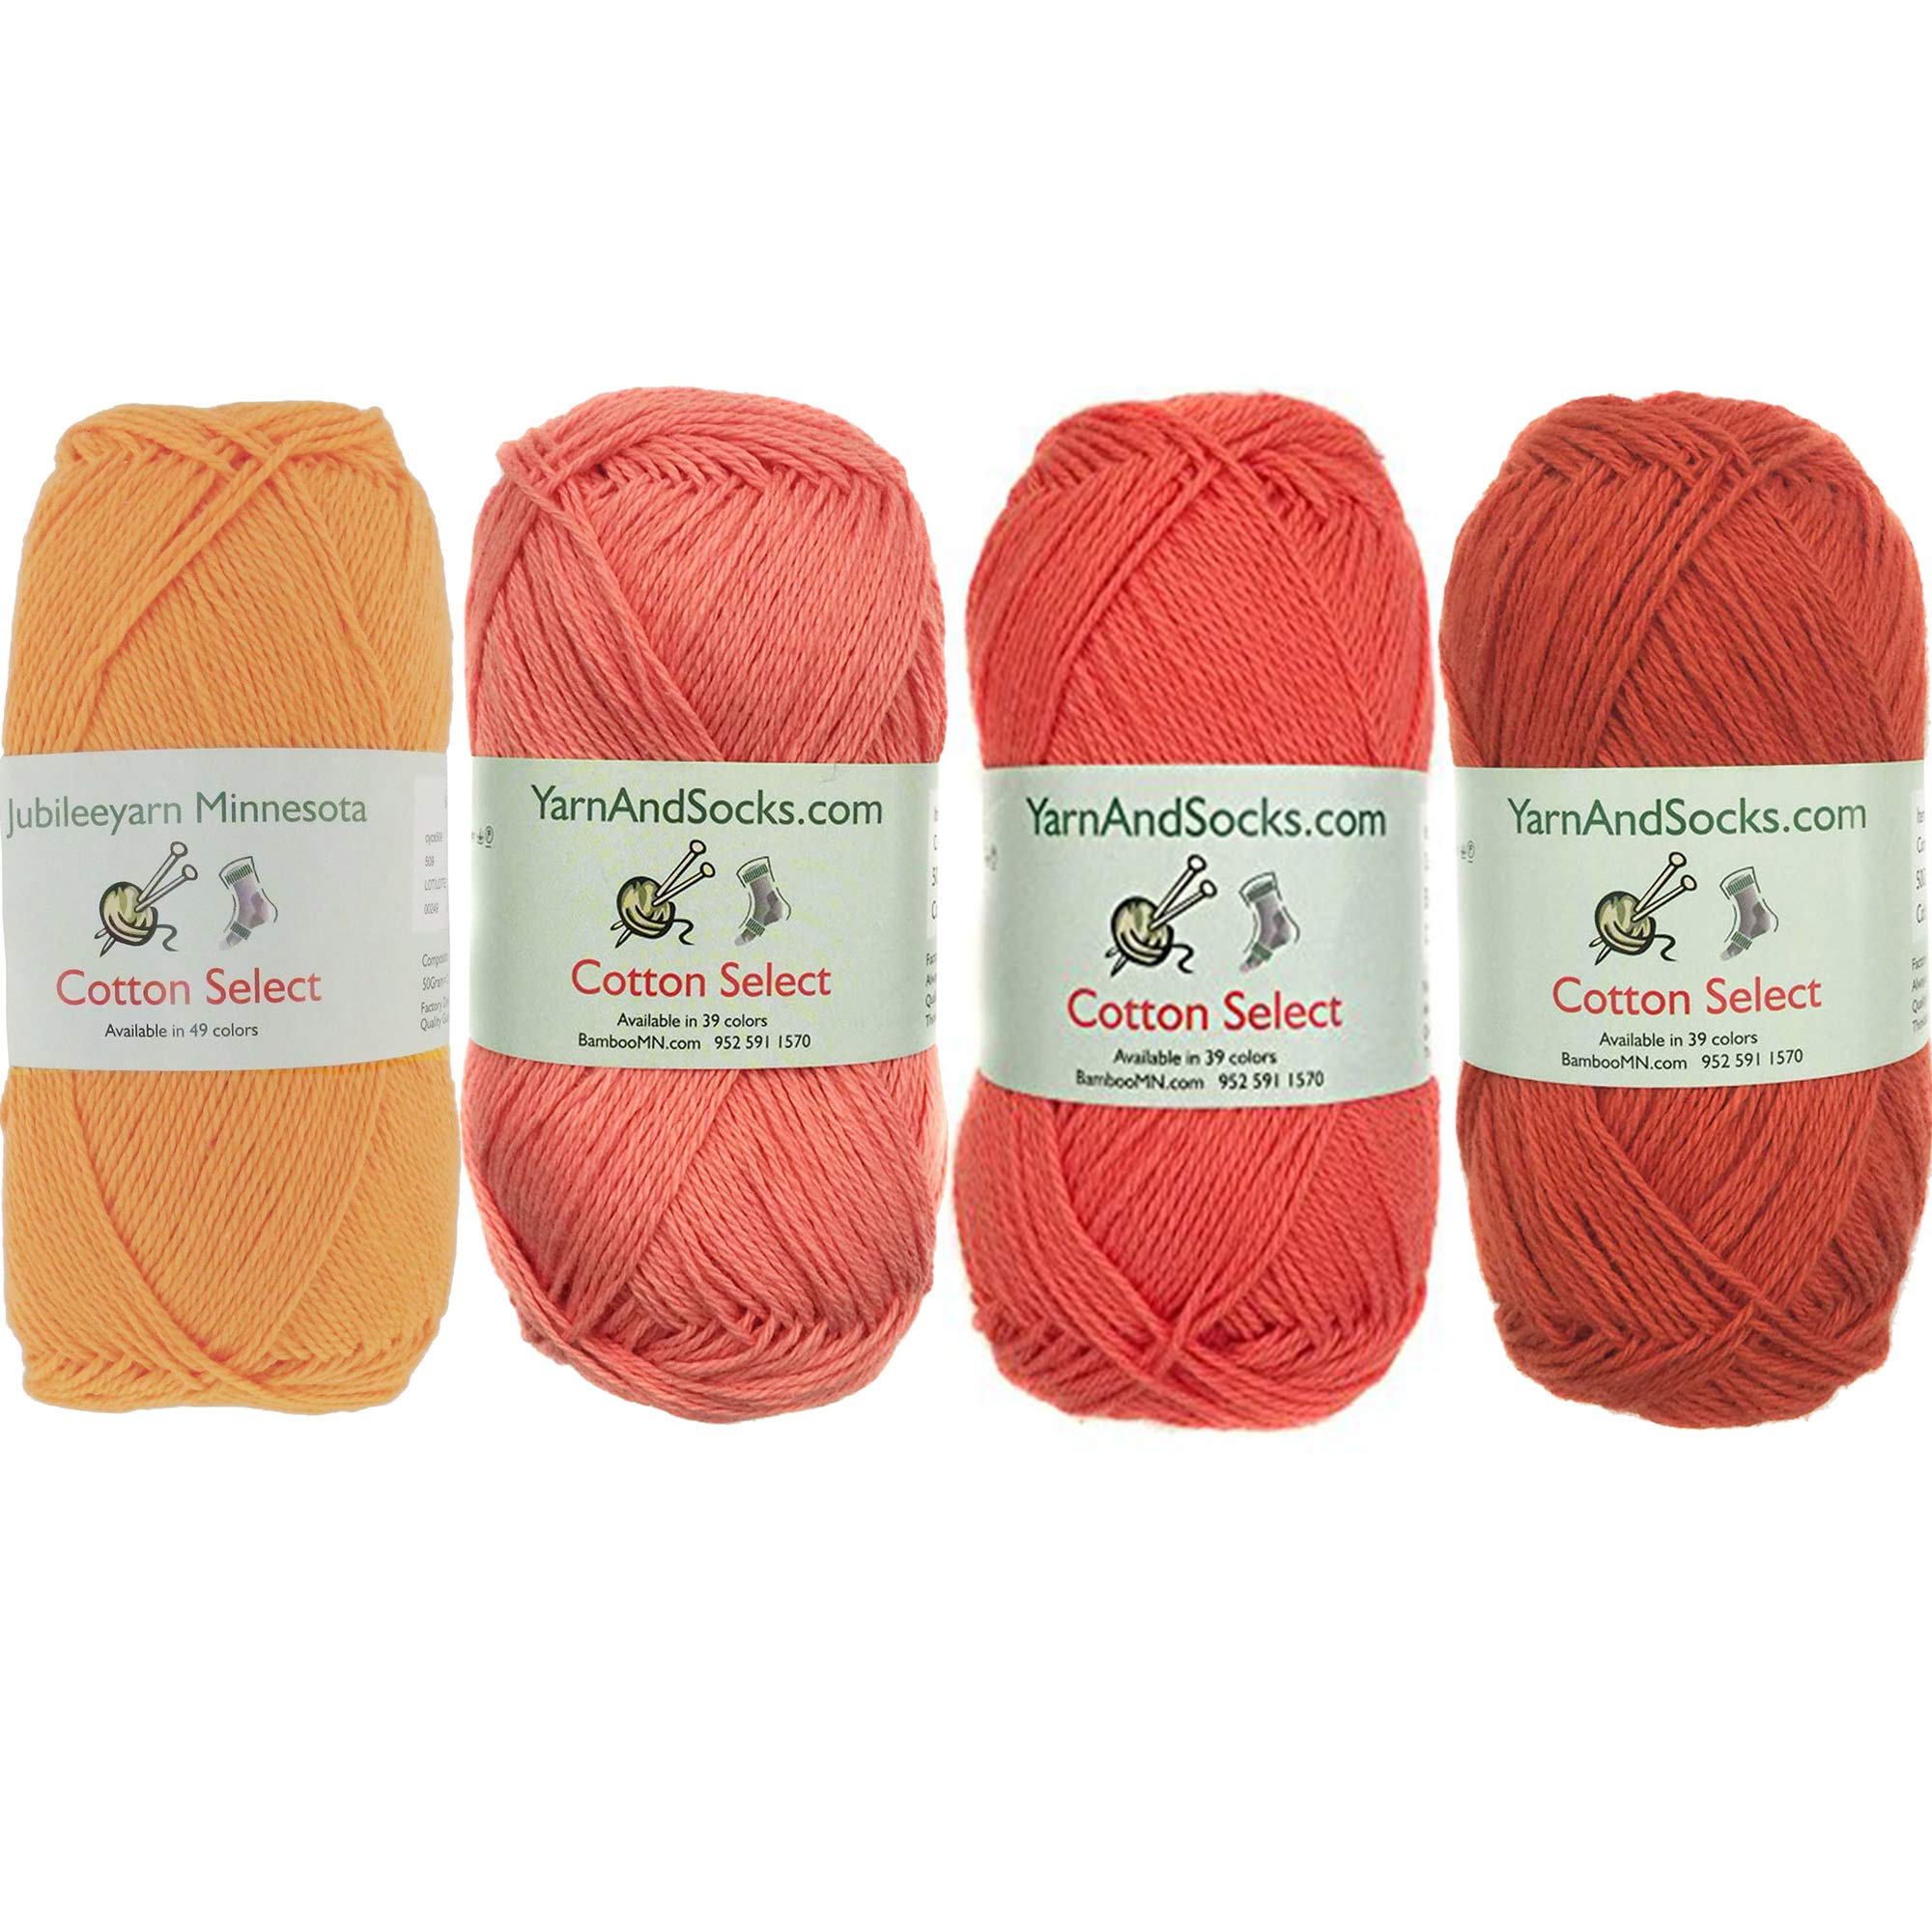 Cotton Select Sport Weight Yarn Color Palette Pack - 100% Fine Cotton - Shades of Orange - 4 Skeins